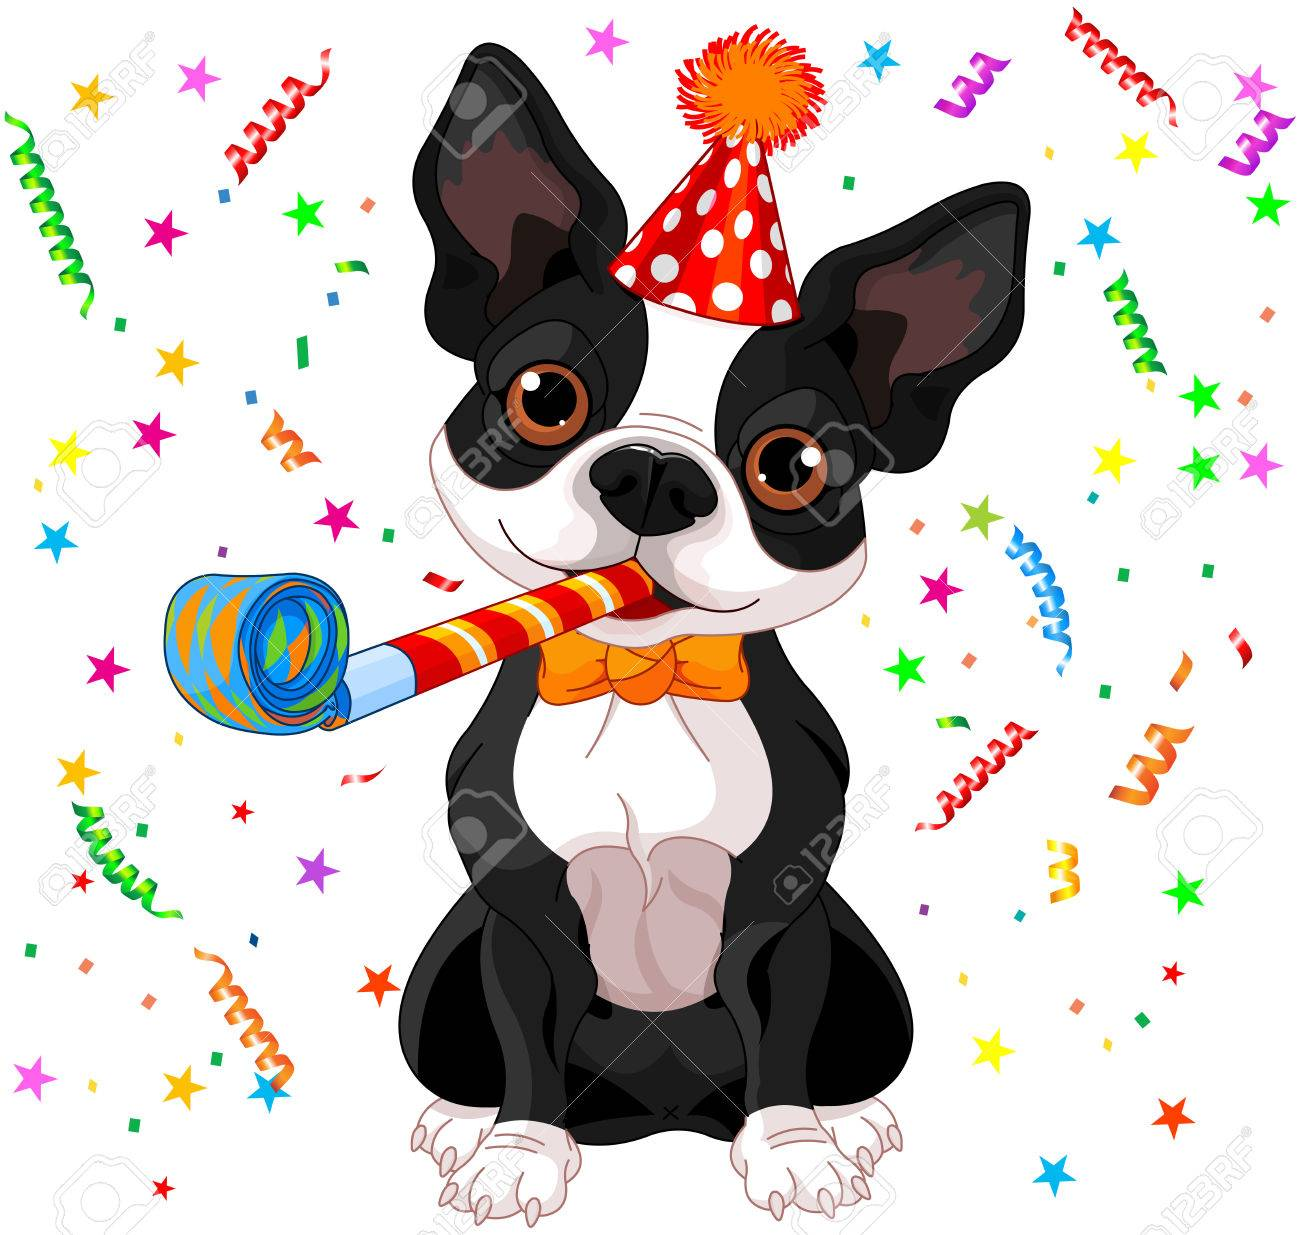 Du club canin au goulag soviétique 35588778-illustration-of-cute-boston-terrier-celebrating